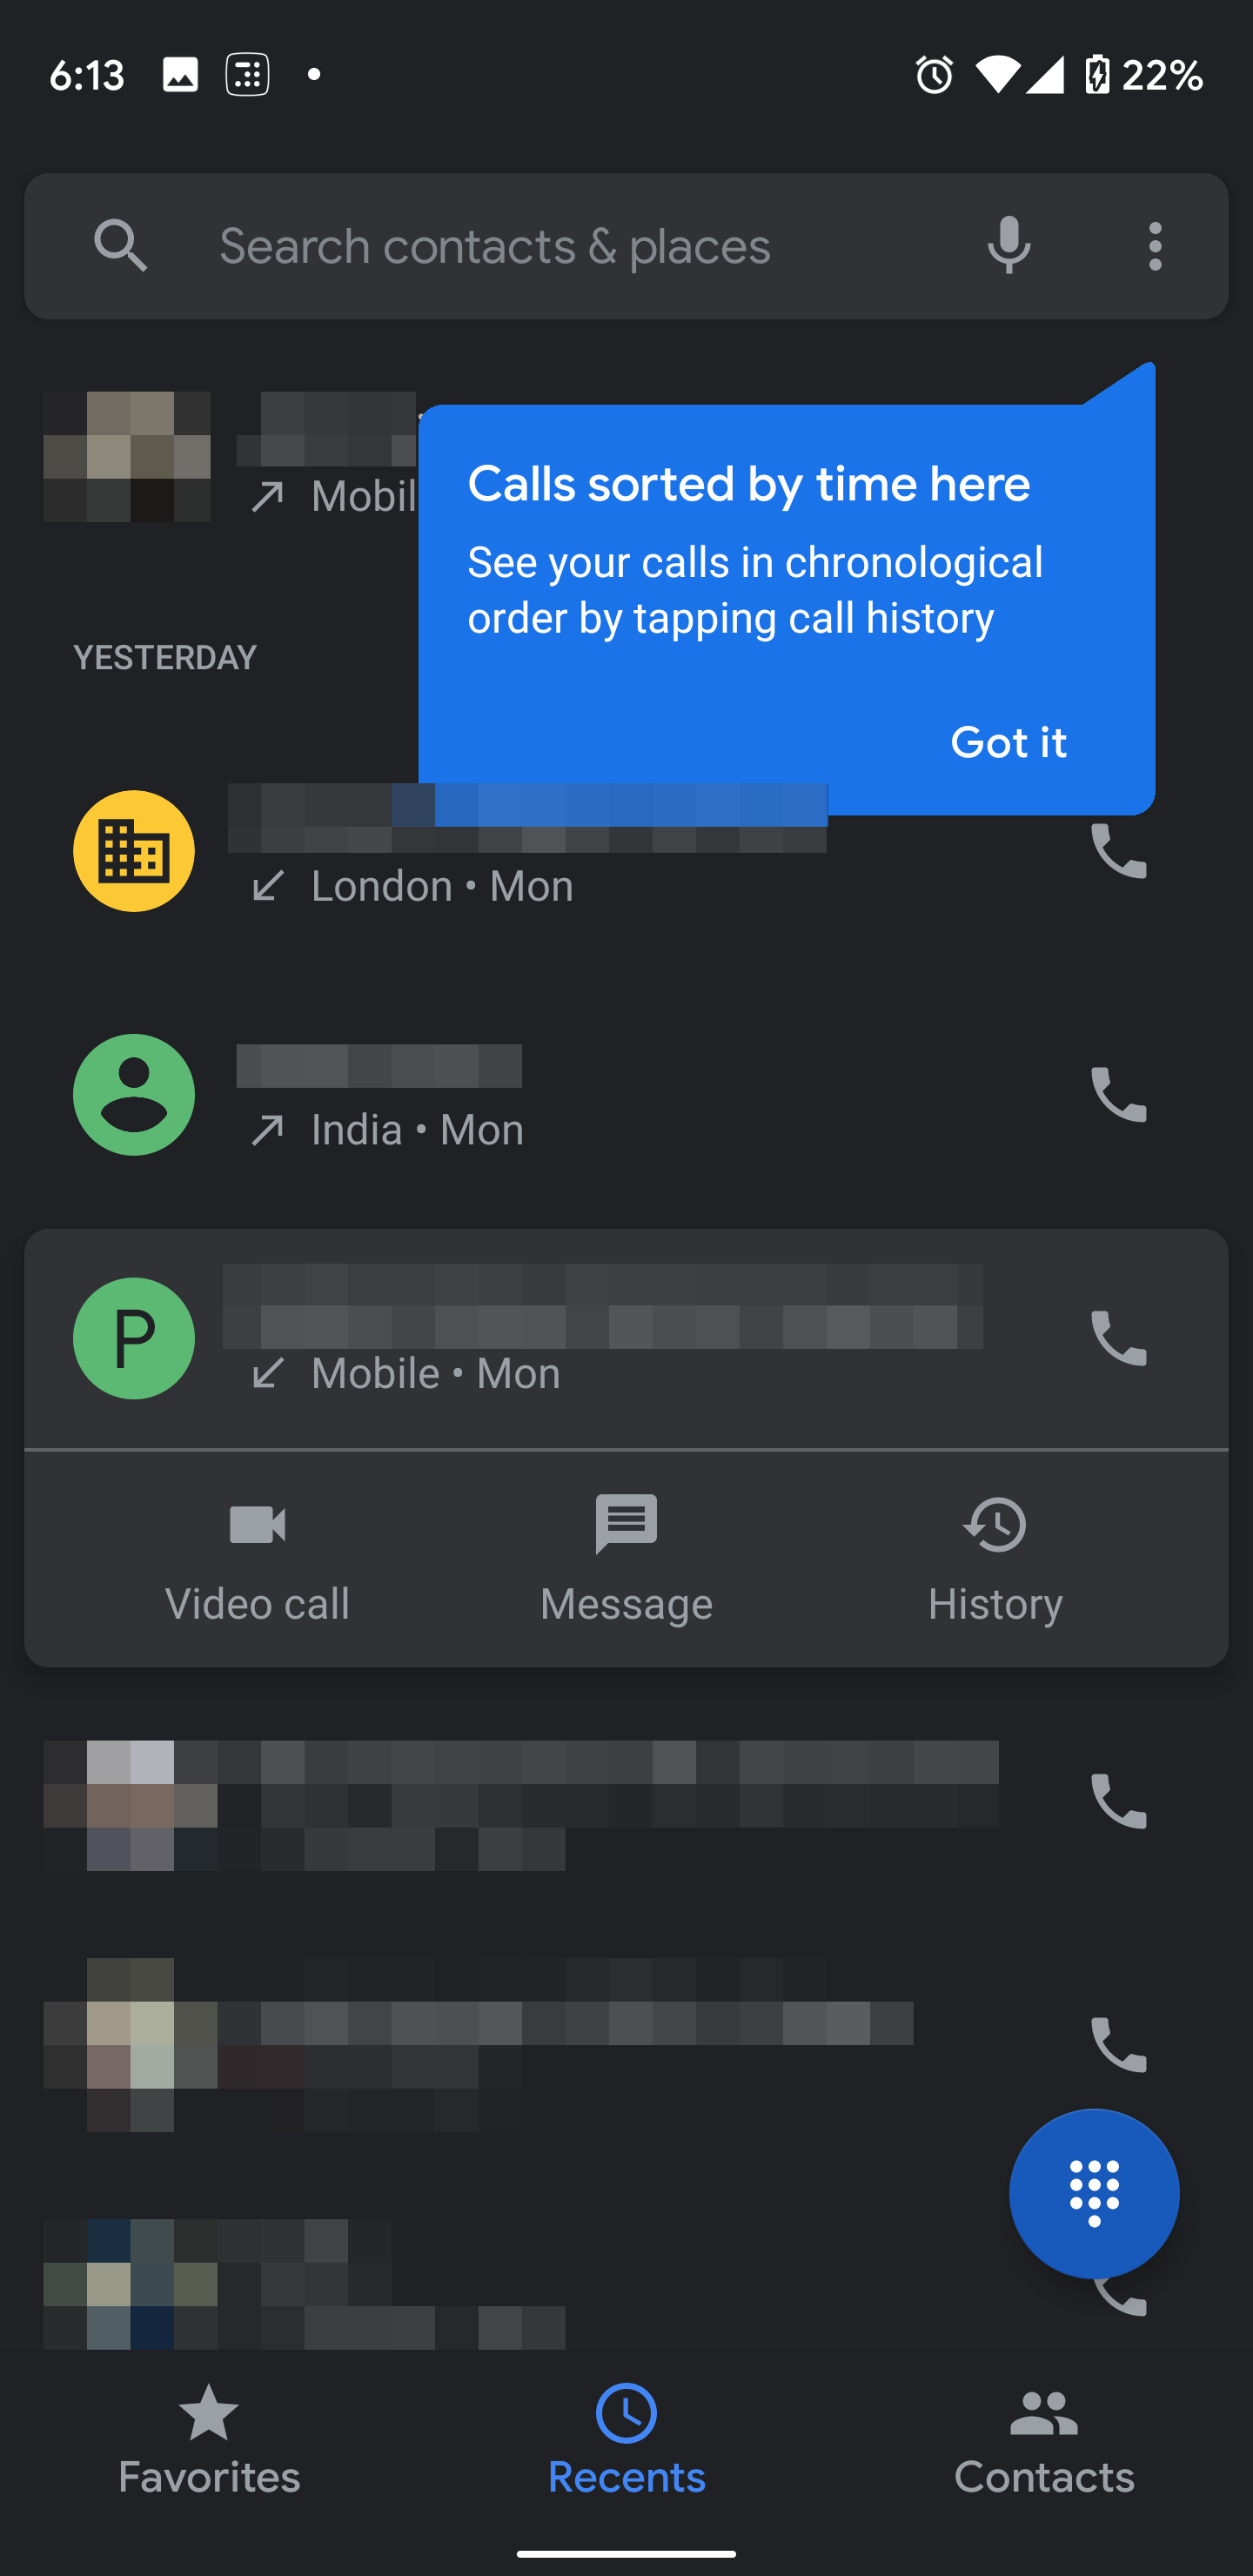 Google Phone v37 groups call history by contact, lets you swipe to